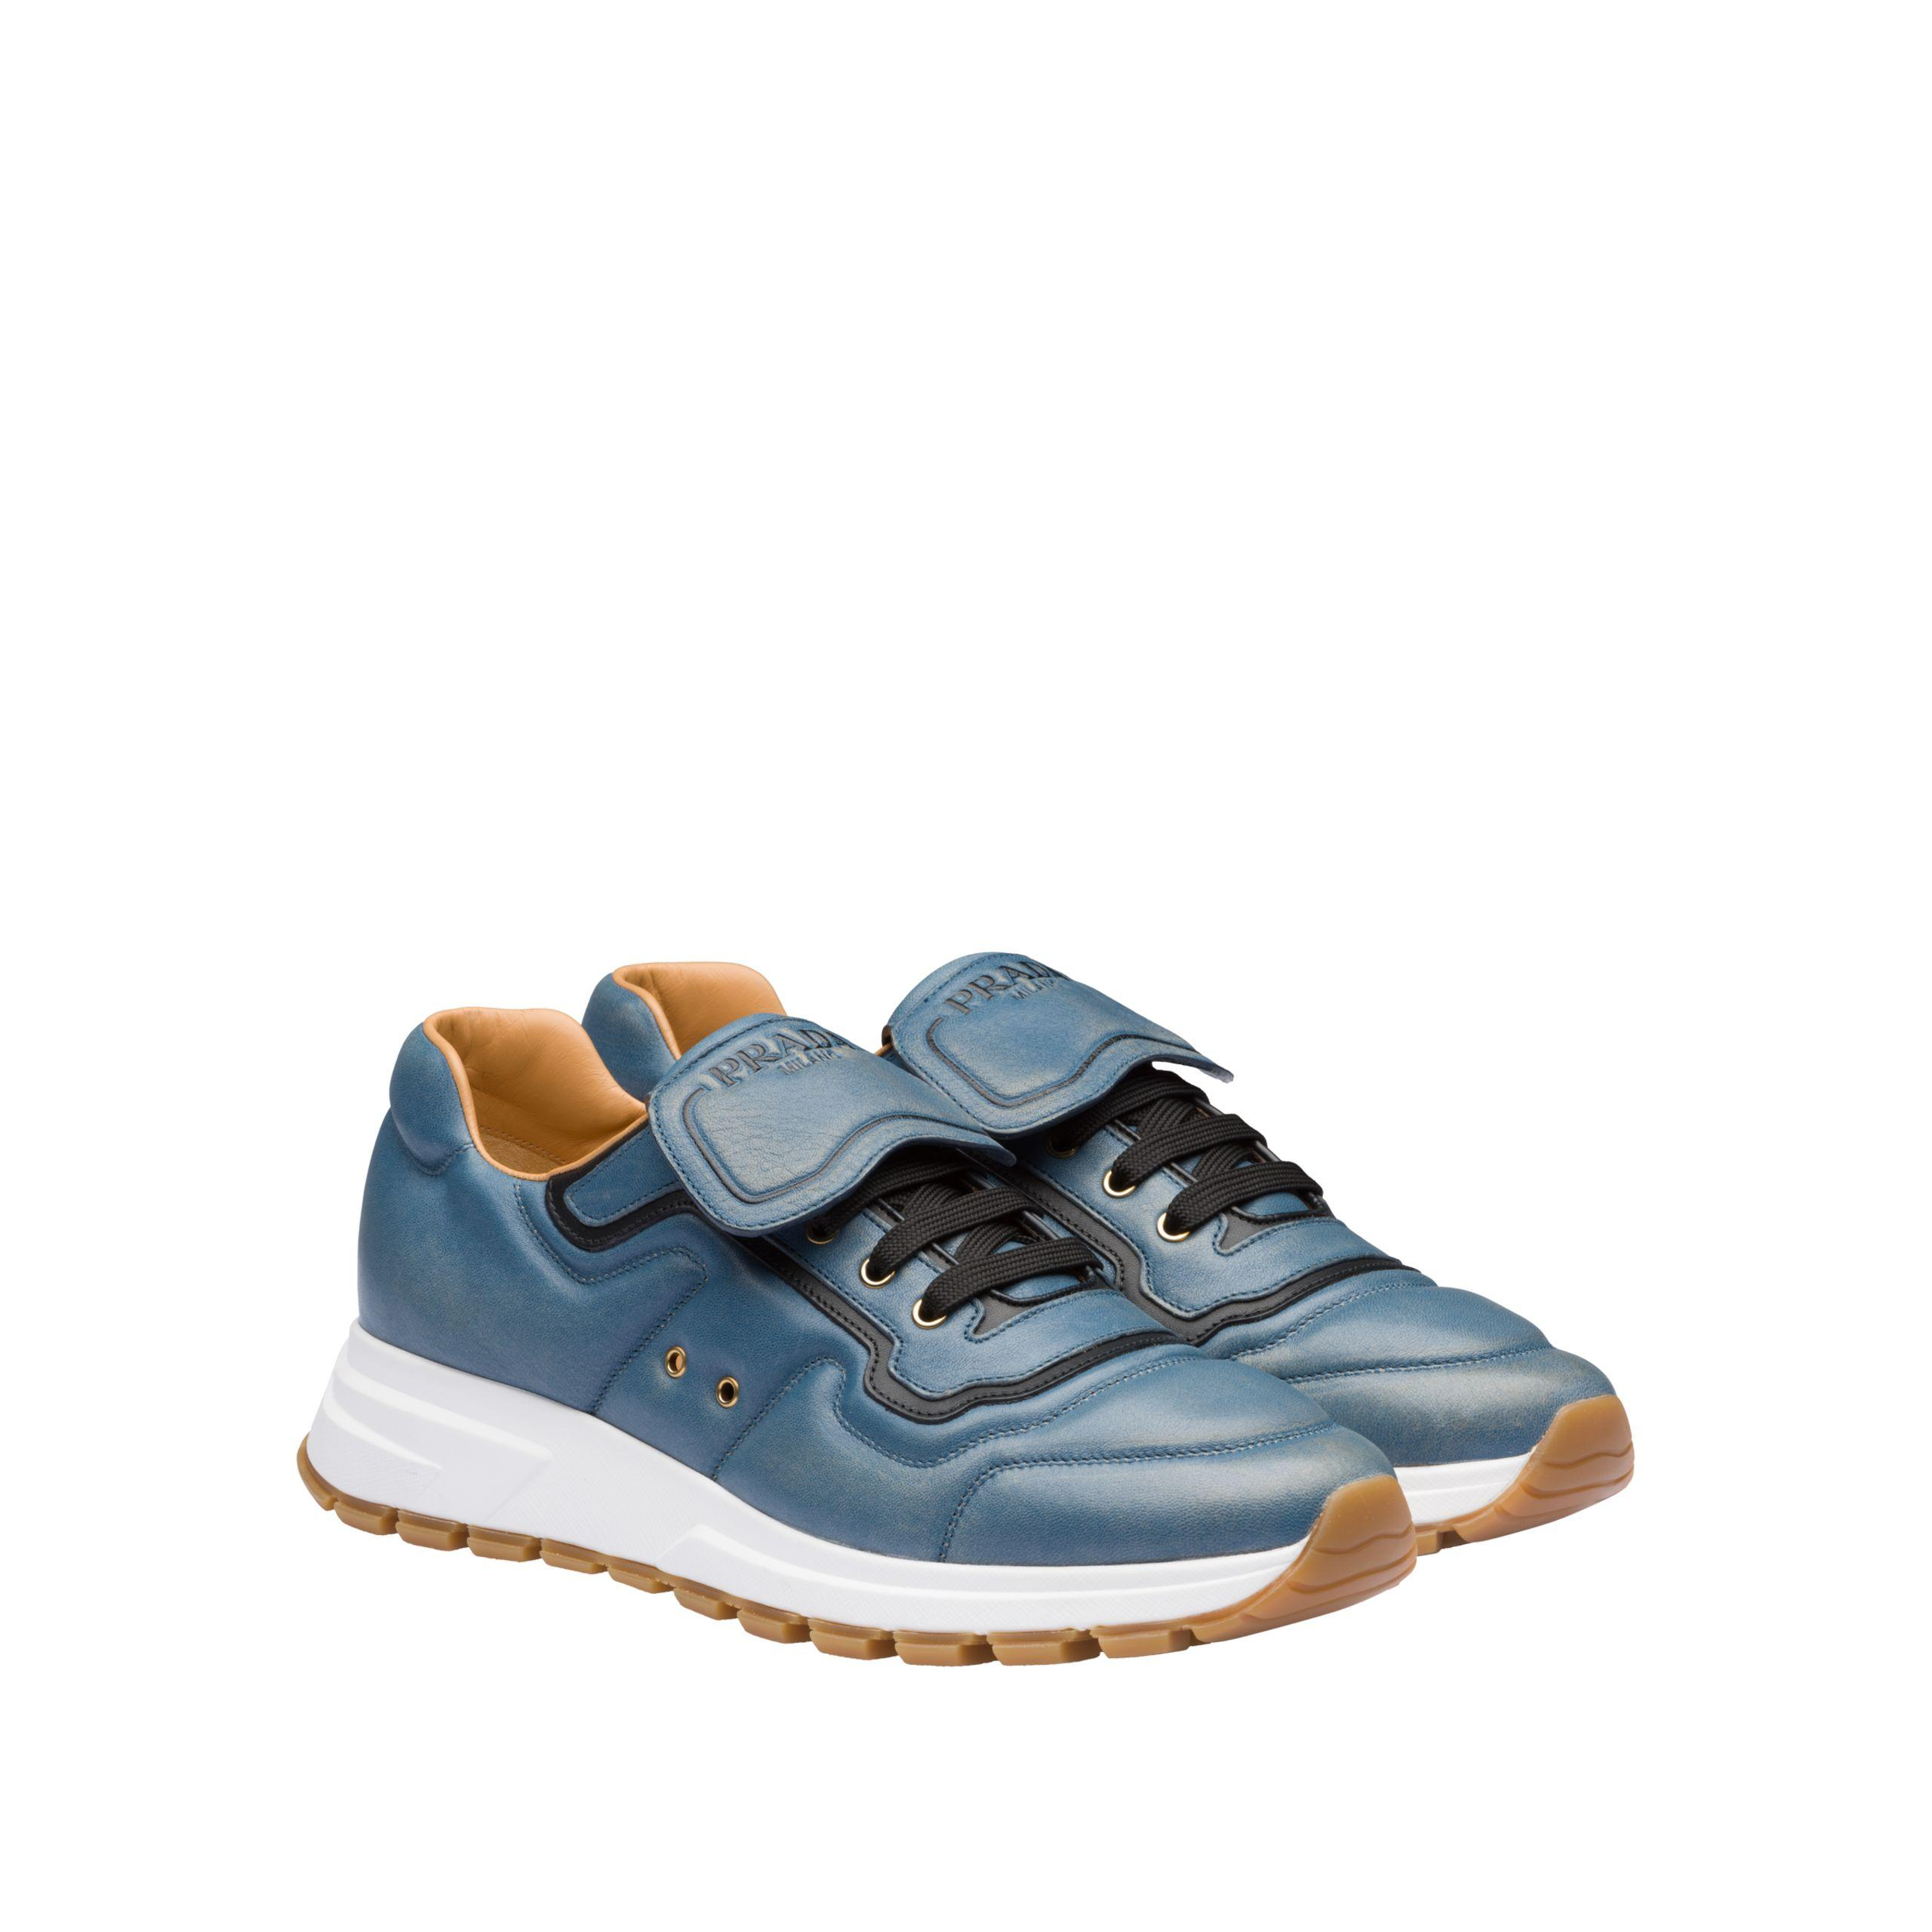 ee51cbcb61 Prada Prax 01 Vintage Nappa Leather Sneakers in Blue for Men - Lyst